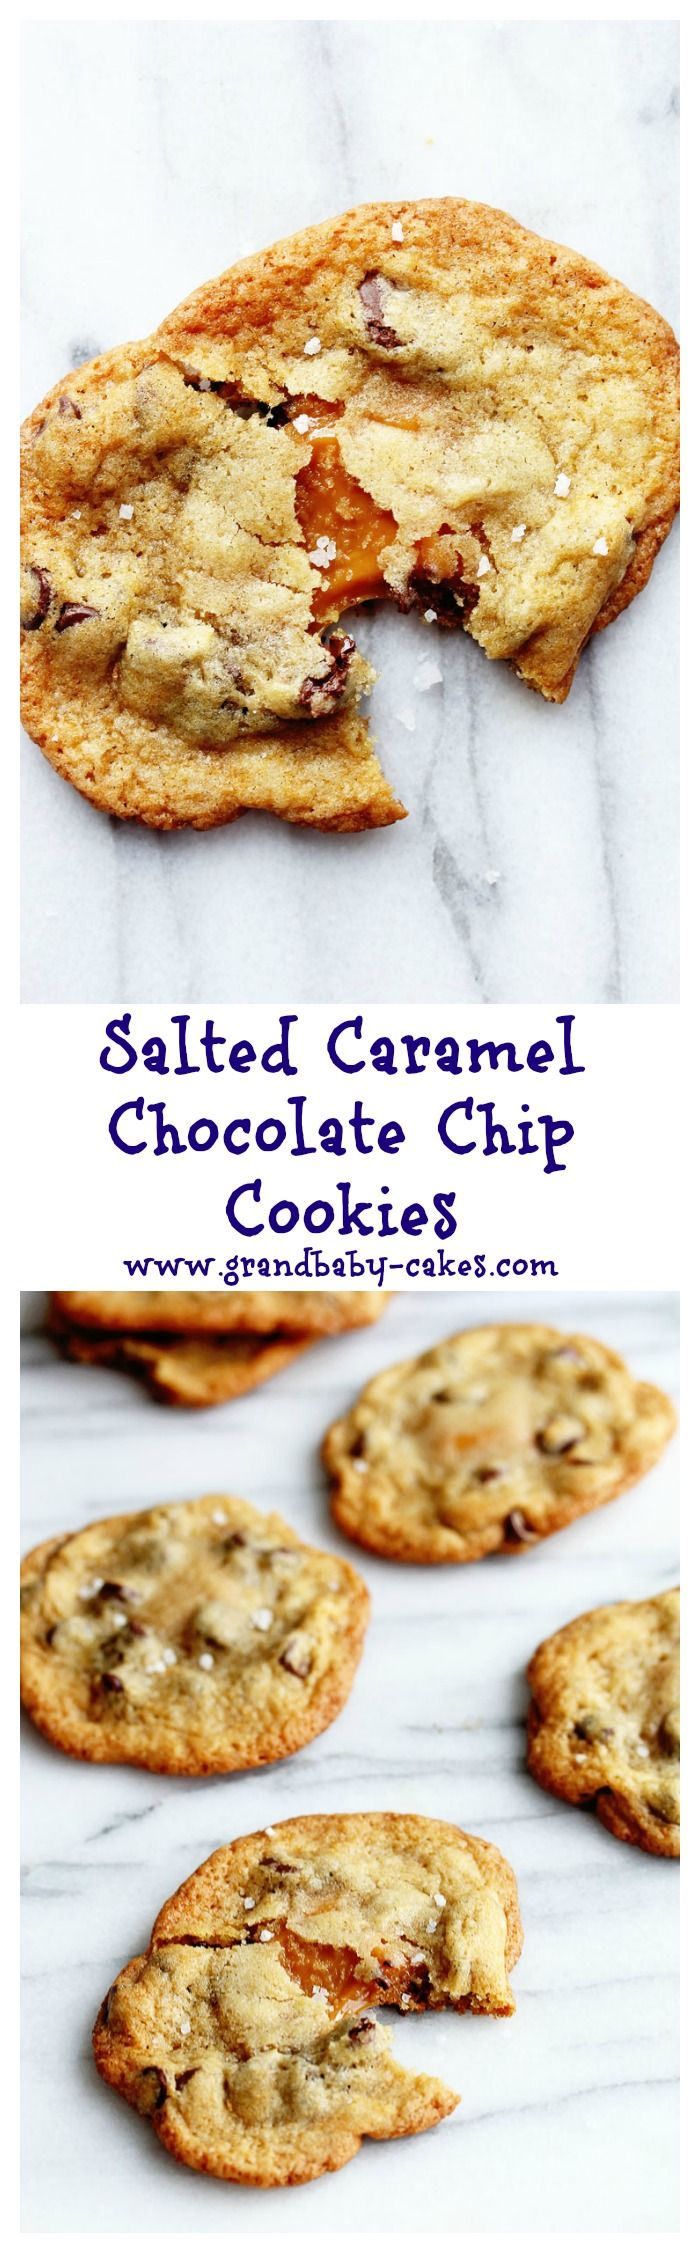 Insanely Delicious Salted Caramel Chocolate Chip Cookies! ~ http://www.grandbaby-cakes.com